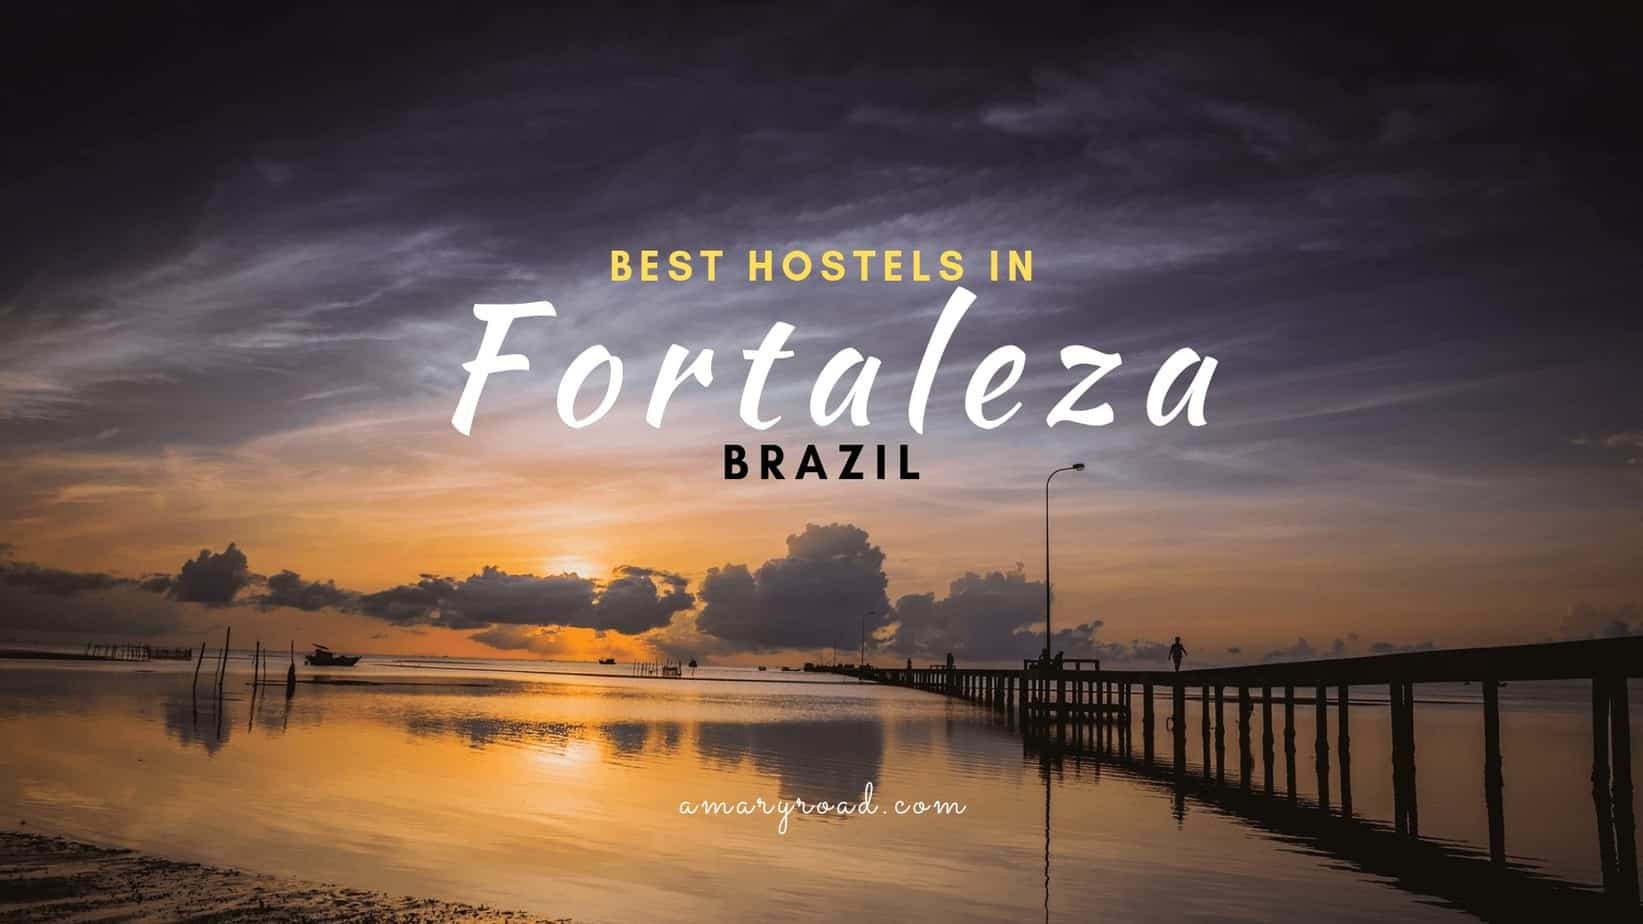 If you are heading to Fortaleza, Brazil but undecided which is the best place to stay, check this best hostels in Fortaleza. I listed the best party hostel, homestay, chill vibe hostel, and hostel with a swimming pool. #besthostelsinfortaleza #wheretostayinfortaleza #fortalezabrazil